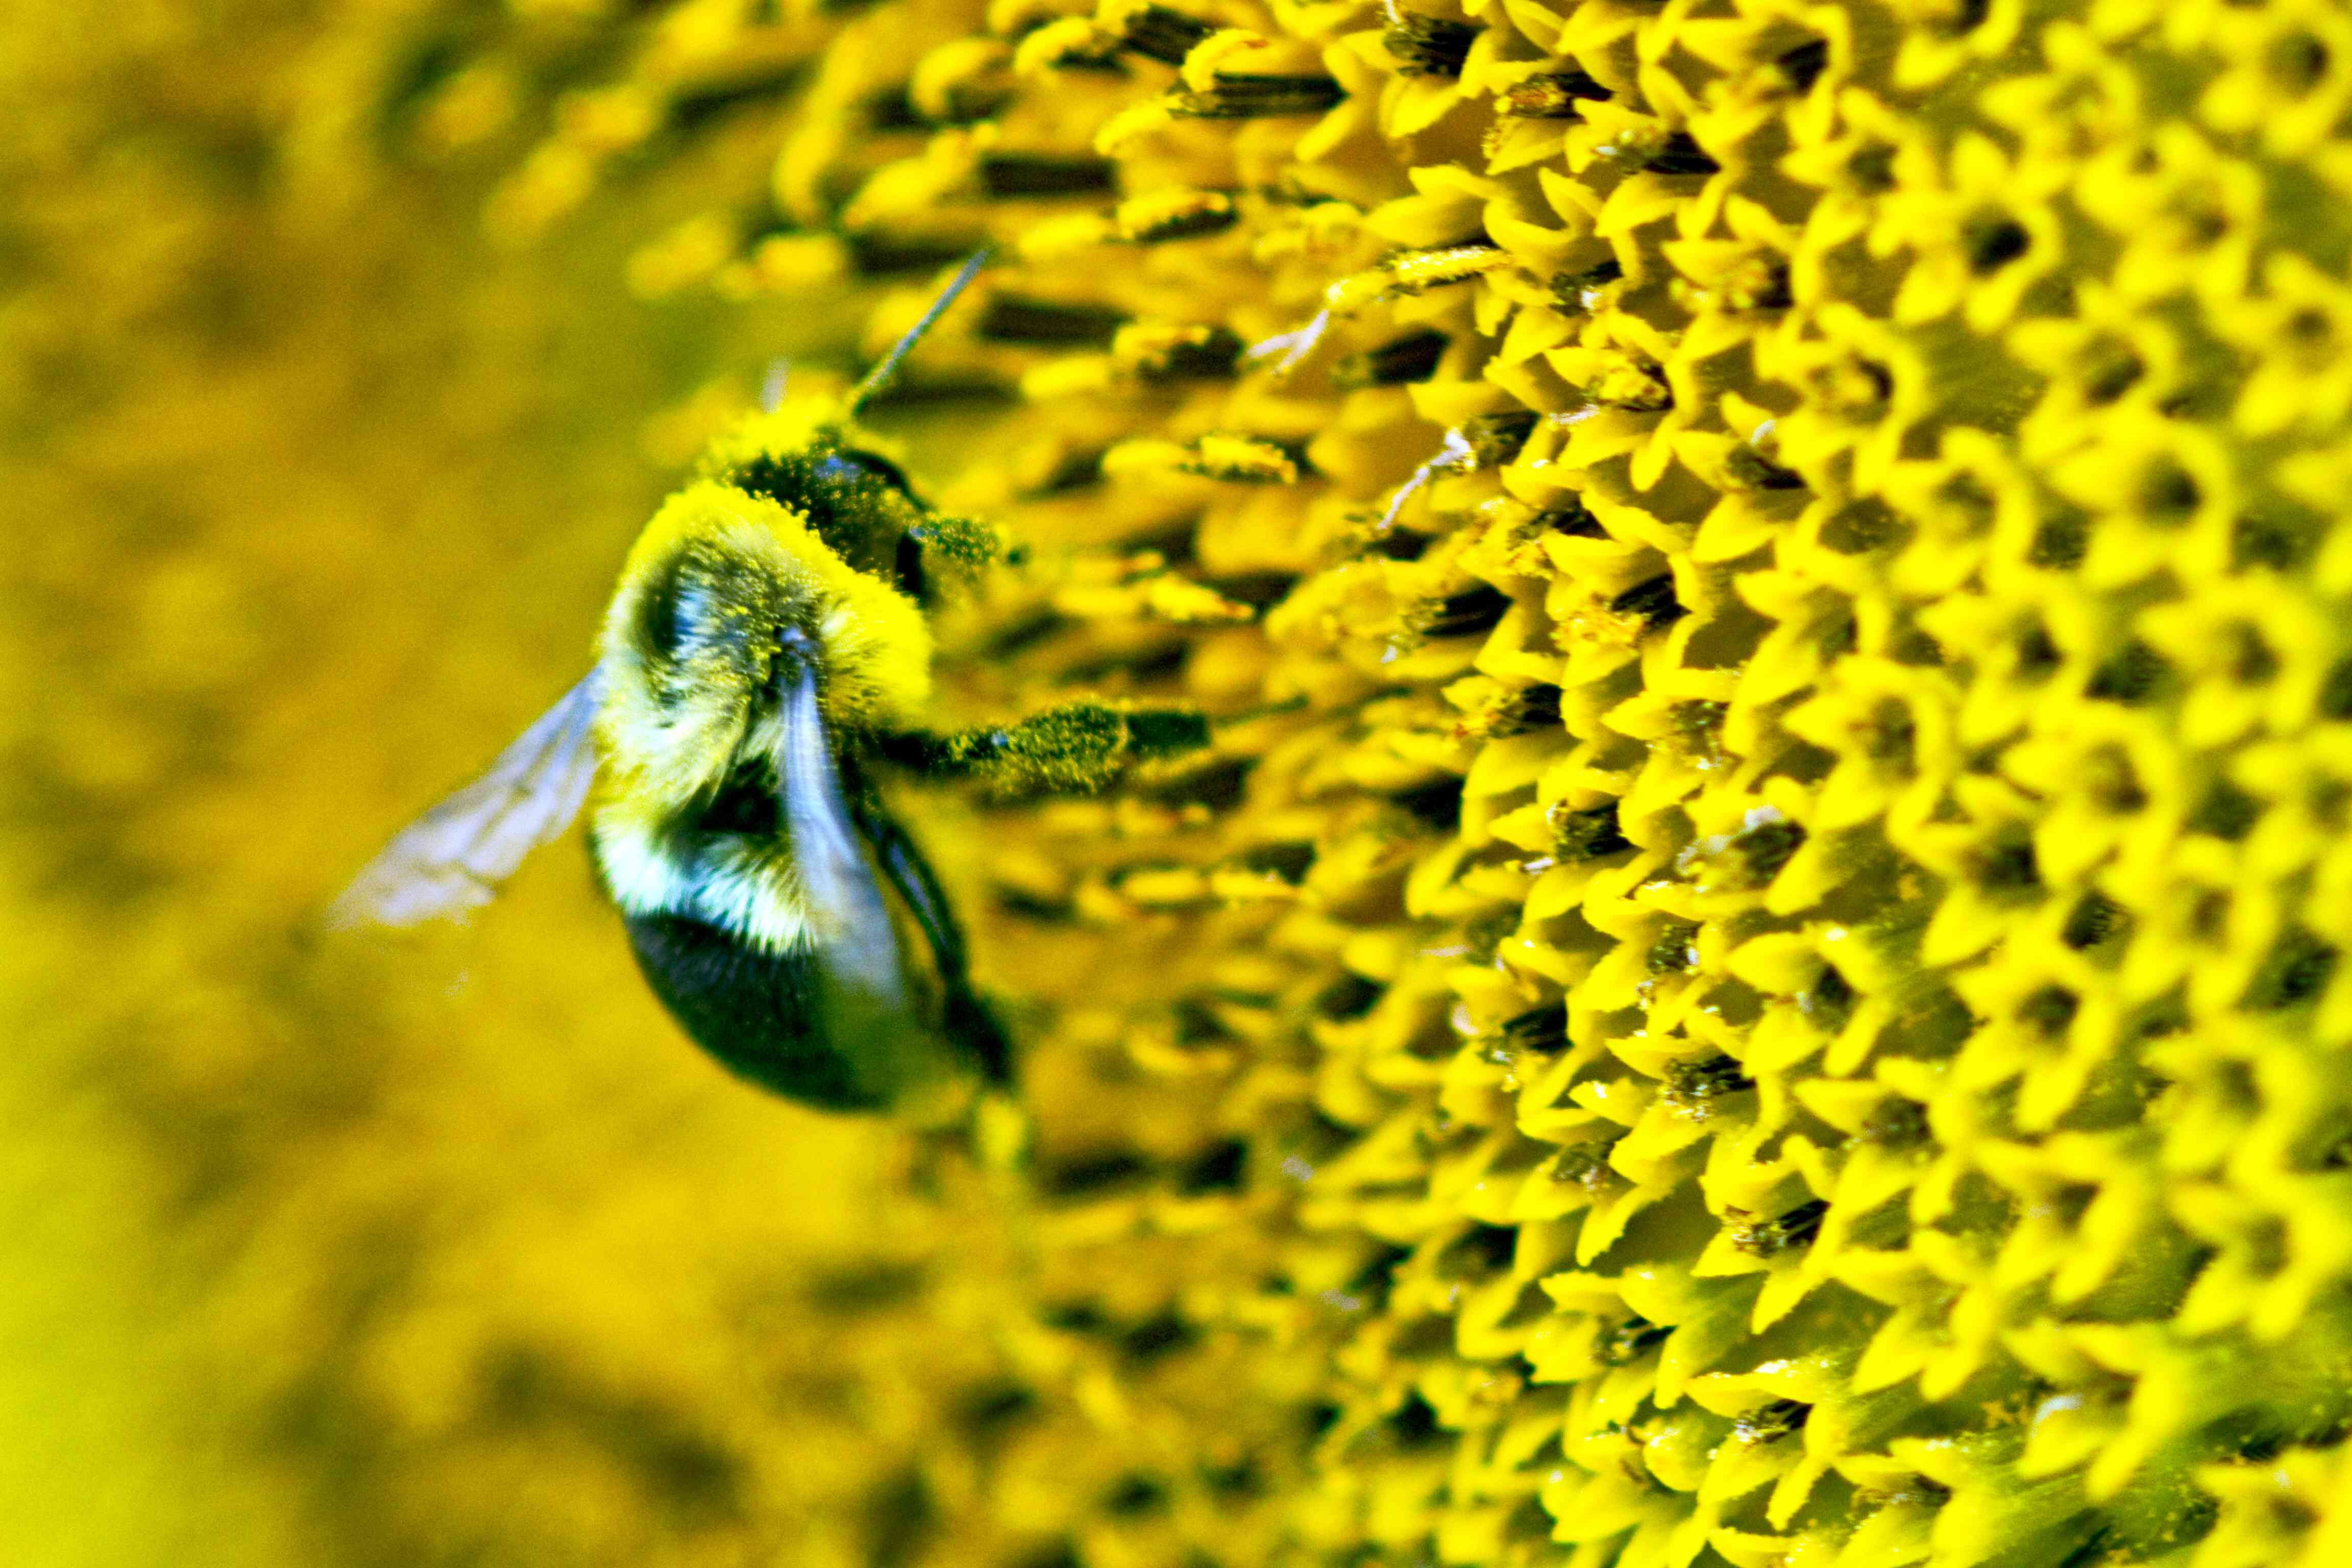 Extreme Close-Up of Southeastern Blueberry Bee on Sunflower